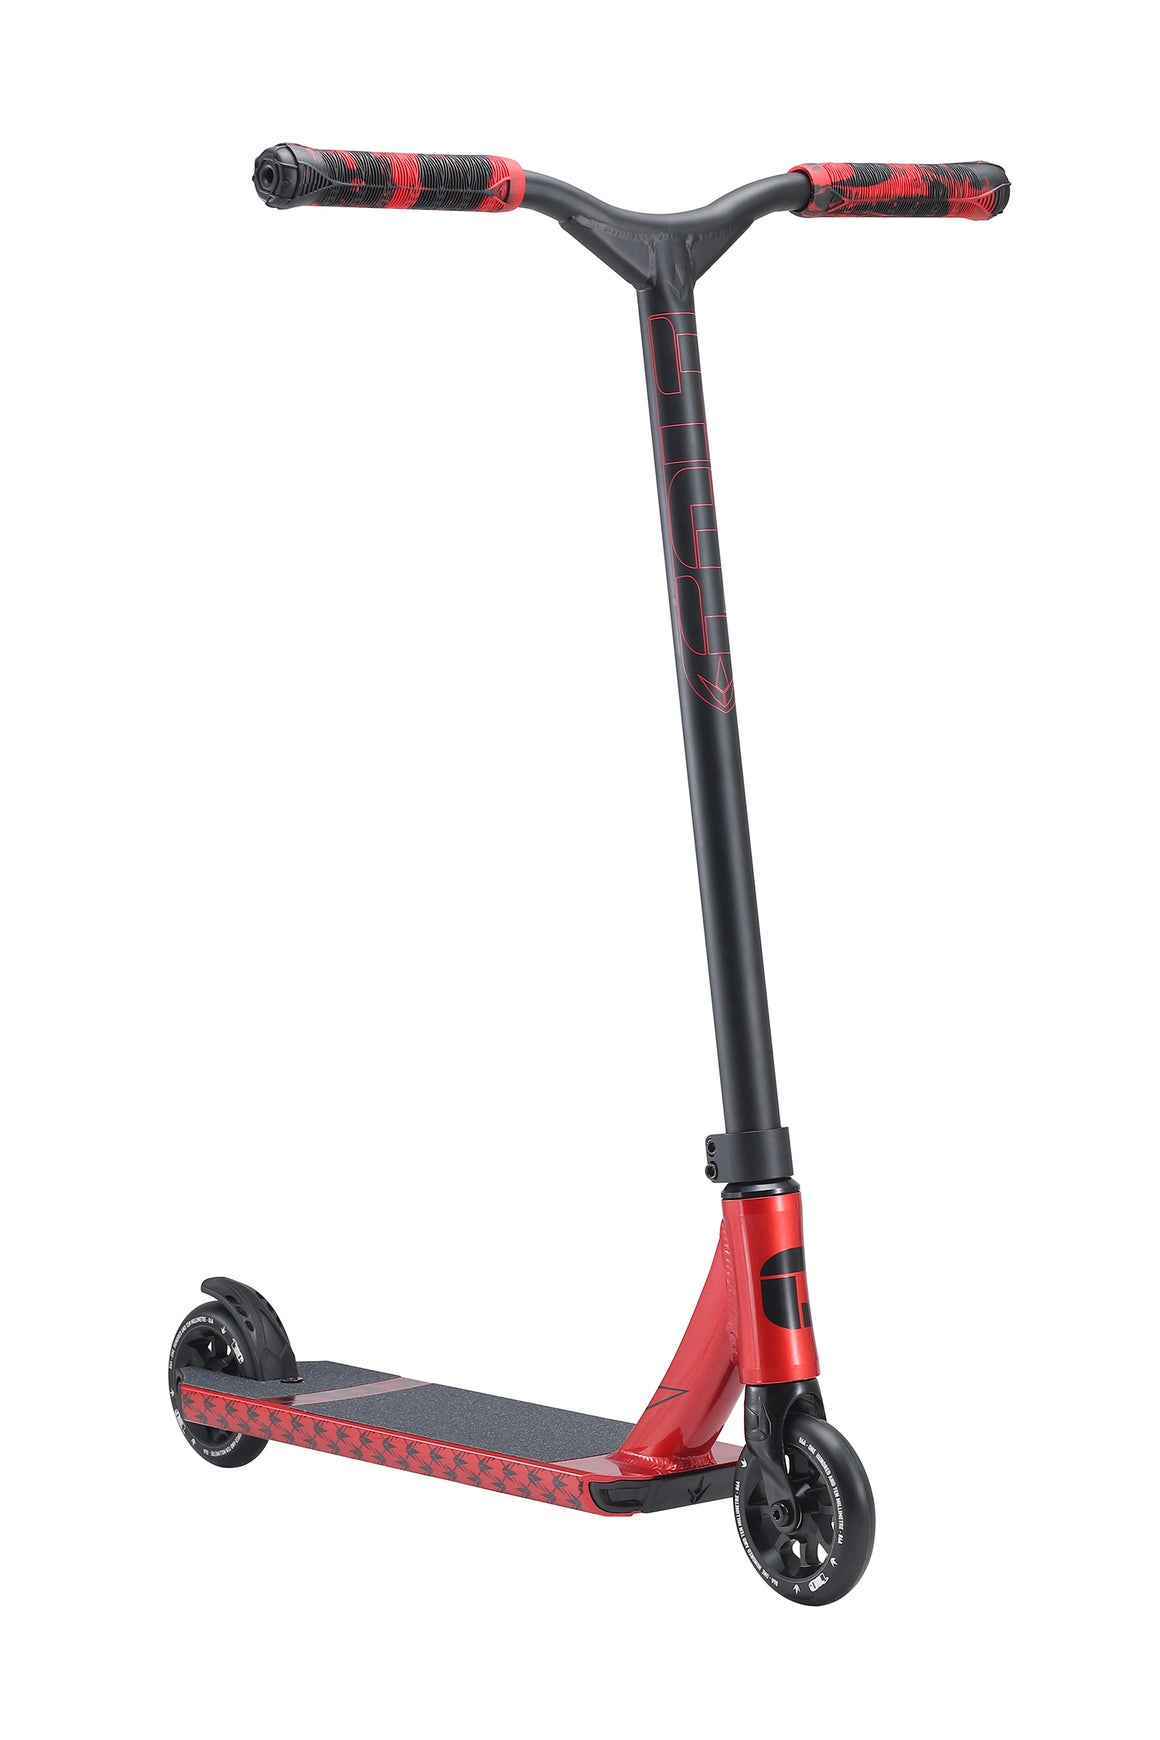 Envy Colt S4 Complete Scooter - Red